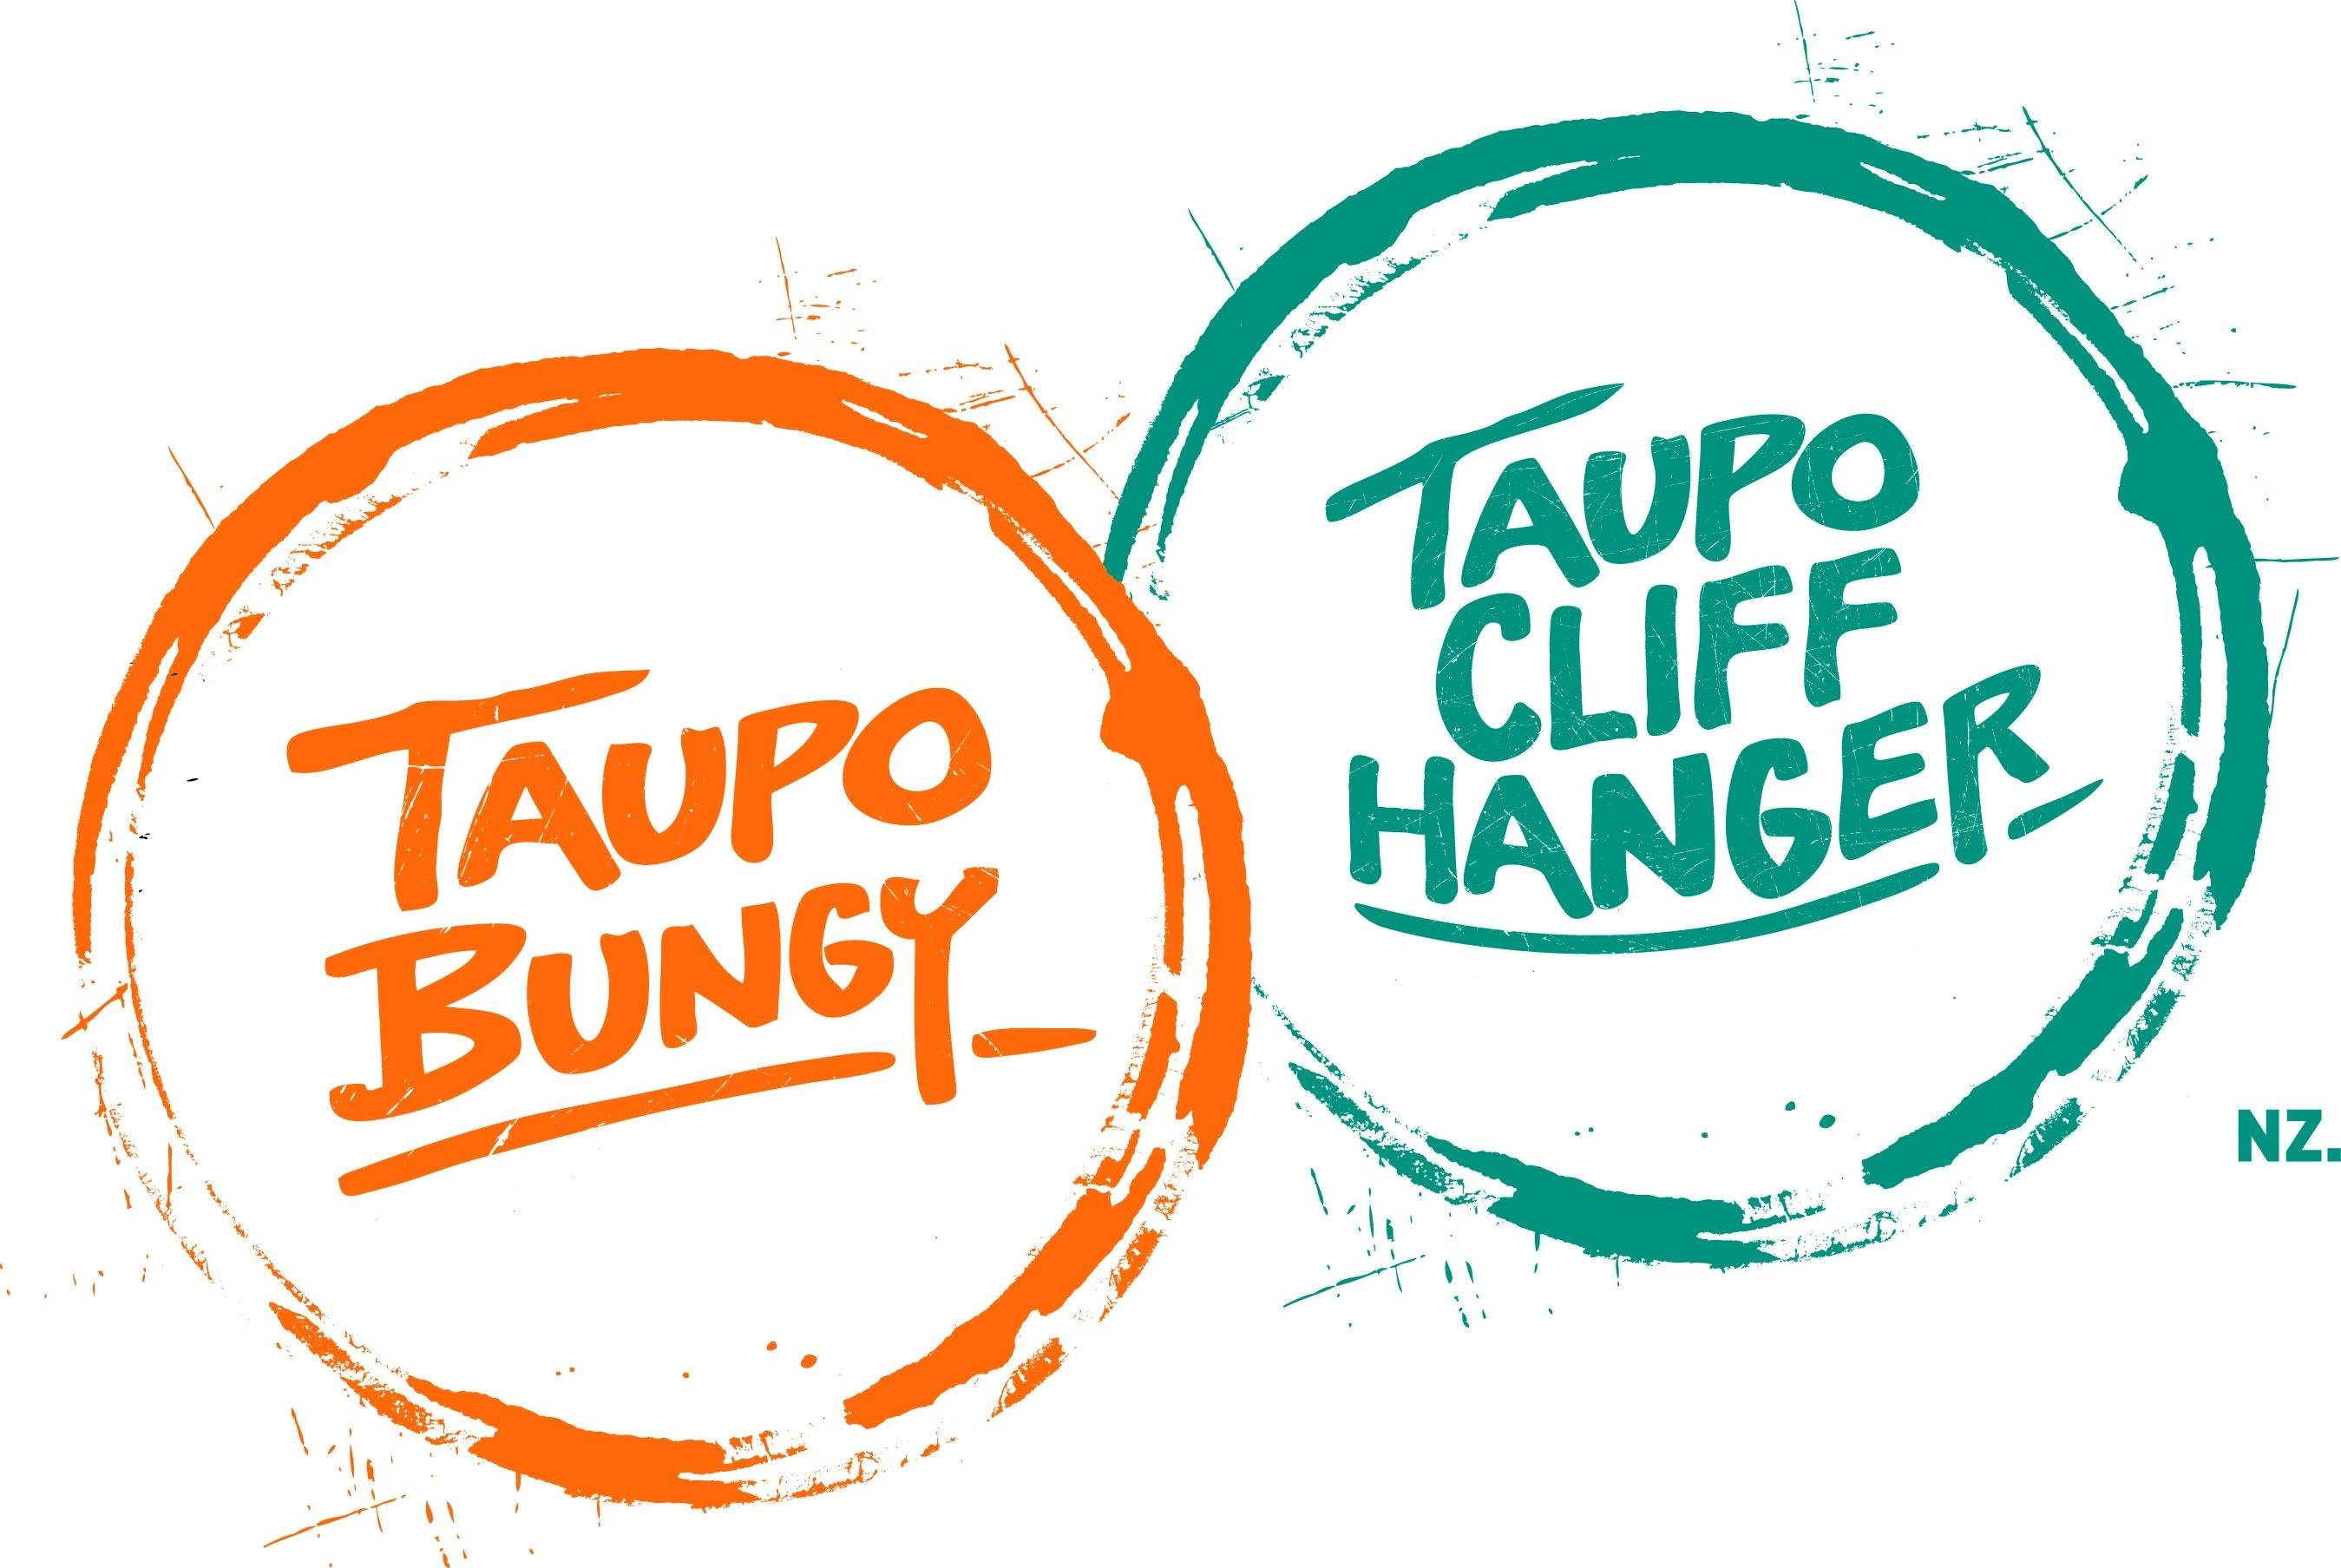 Taupo Bungy & Taupo Cliffhanger